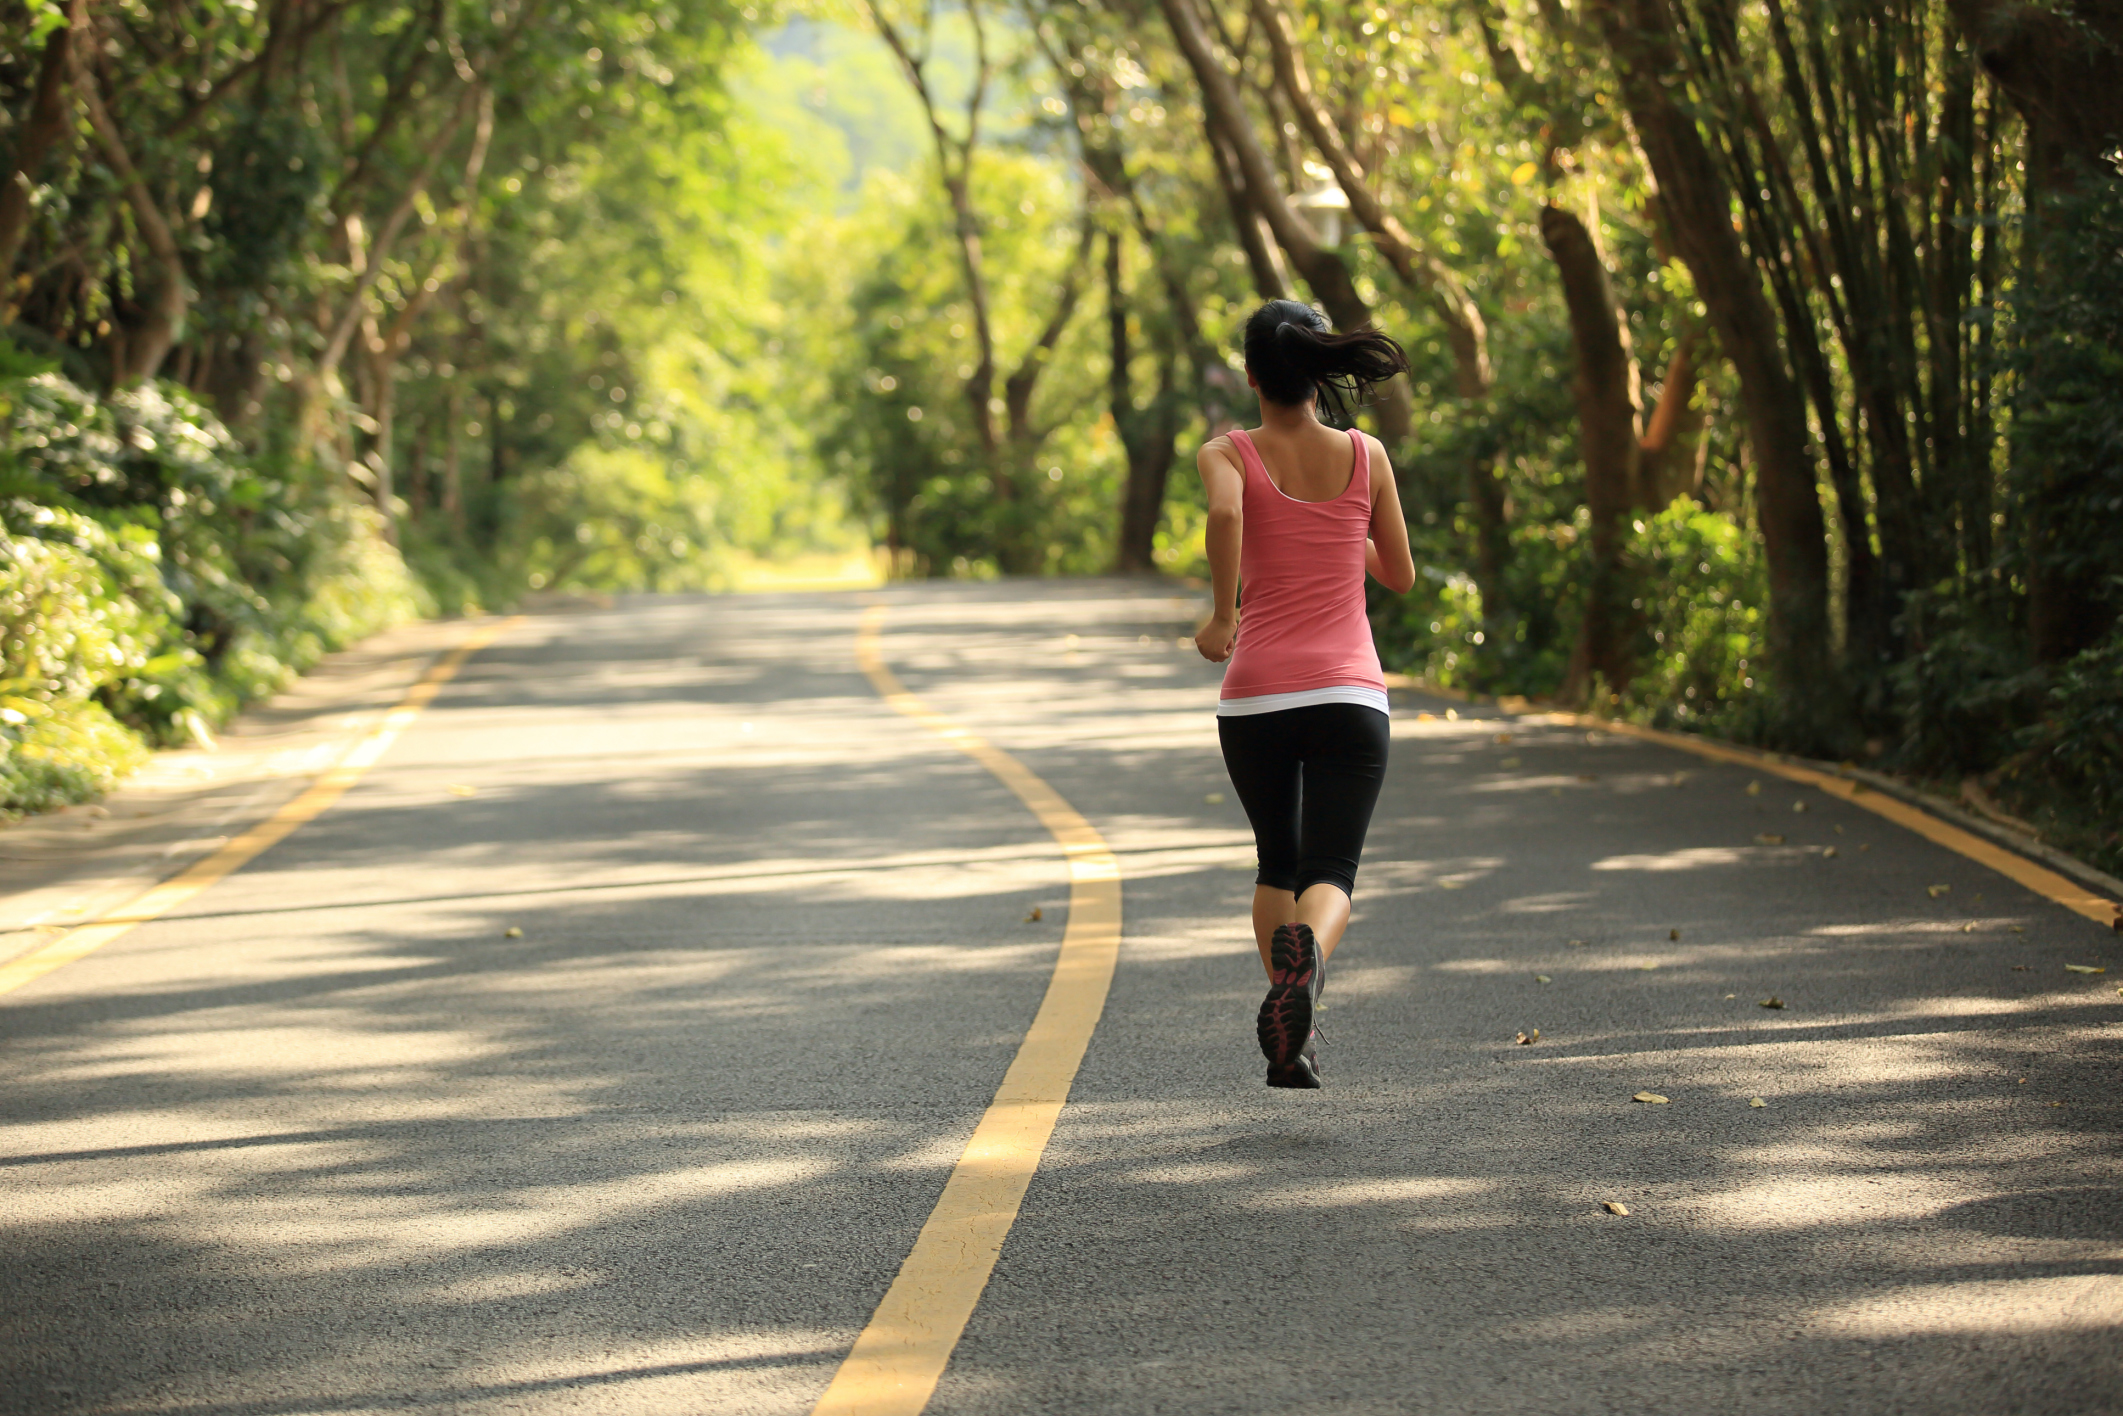 A Few Unspoken Rules and Tips for Running Outdoors